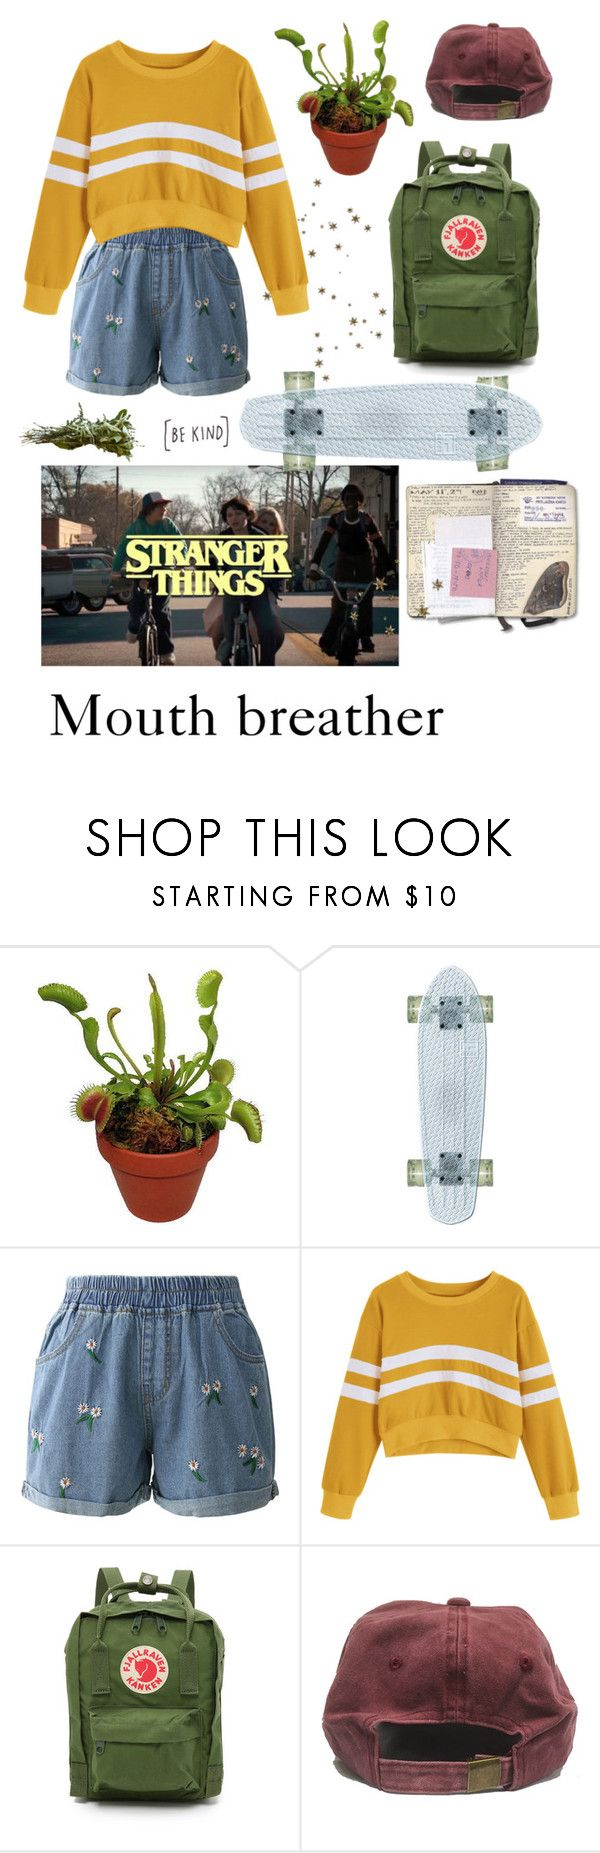 """""""Stranger things"""" by the-chaos-and-the-calm ❤ liked on Polyvore featuring Chicwish, Fjällräven and StrangerThings"""